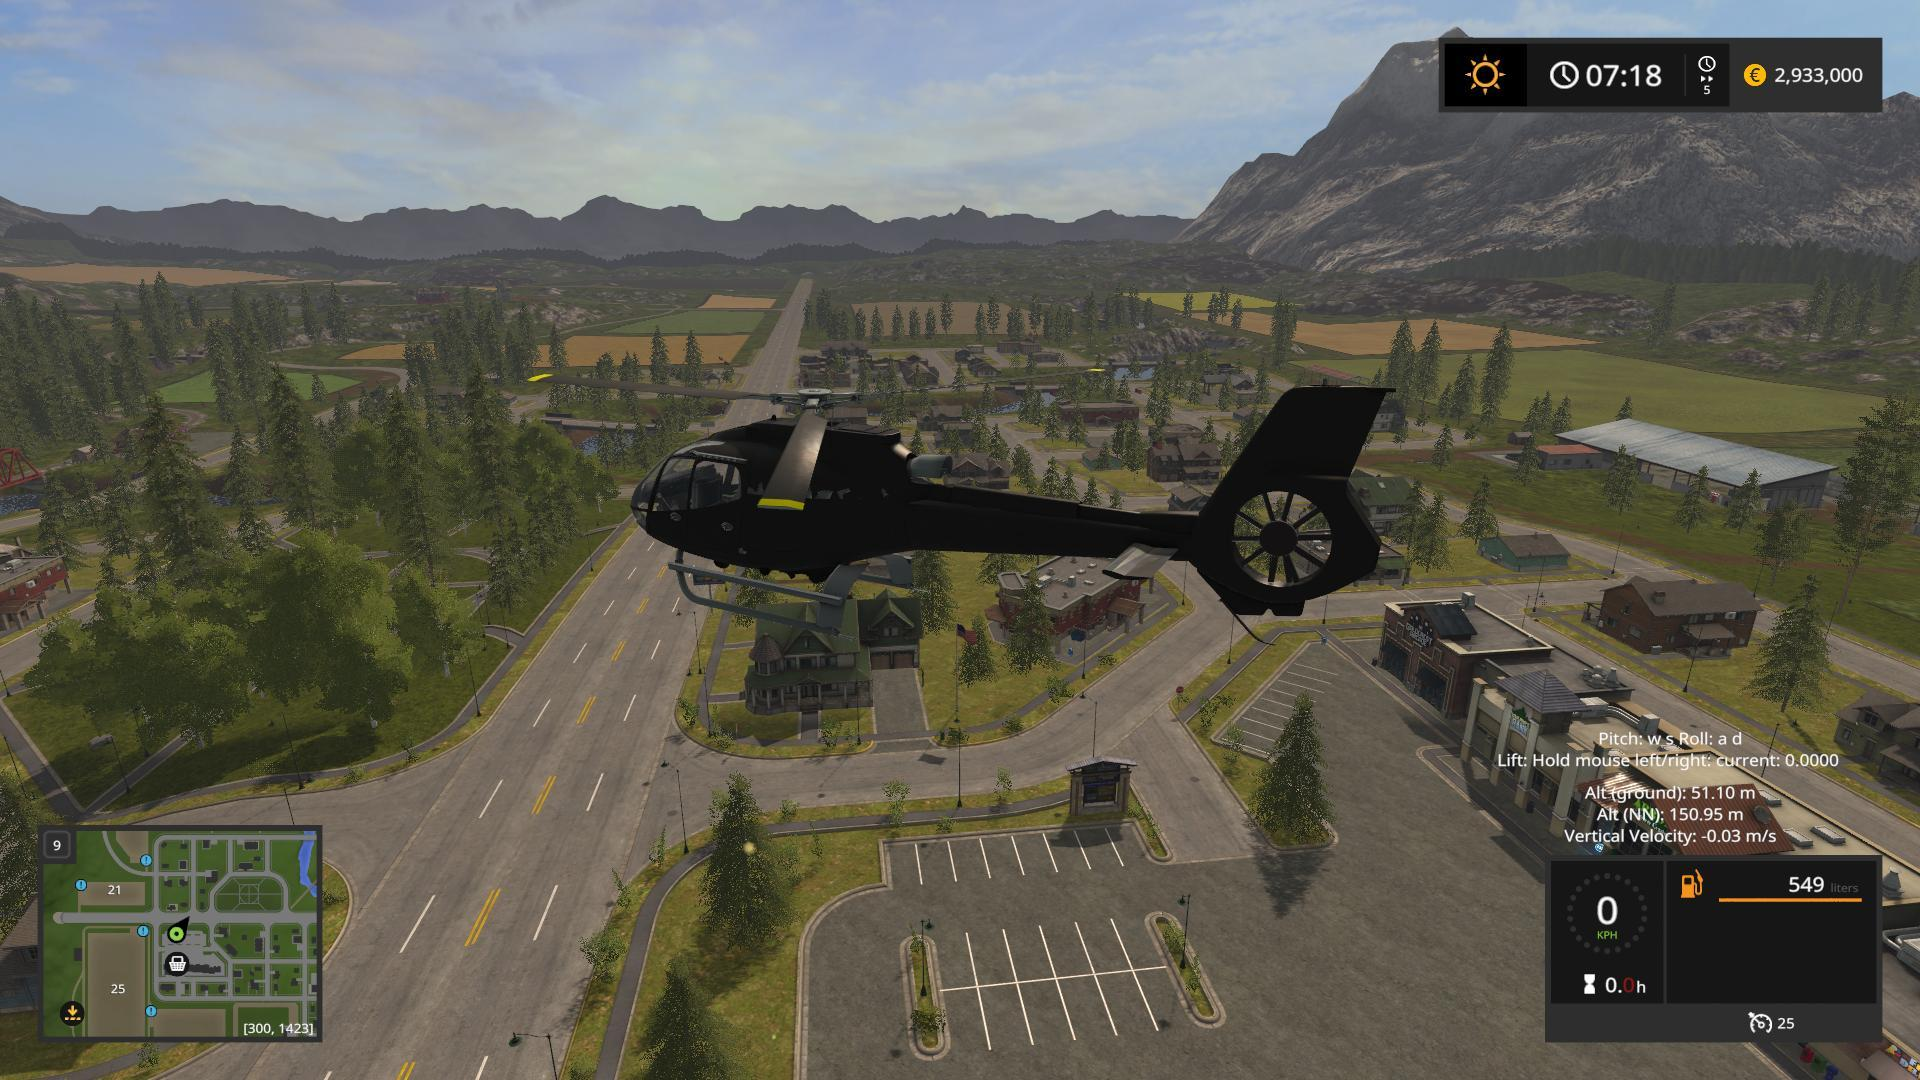 Helicopter » GamesMods net - FS19, FS17, ETS 2 mods